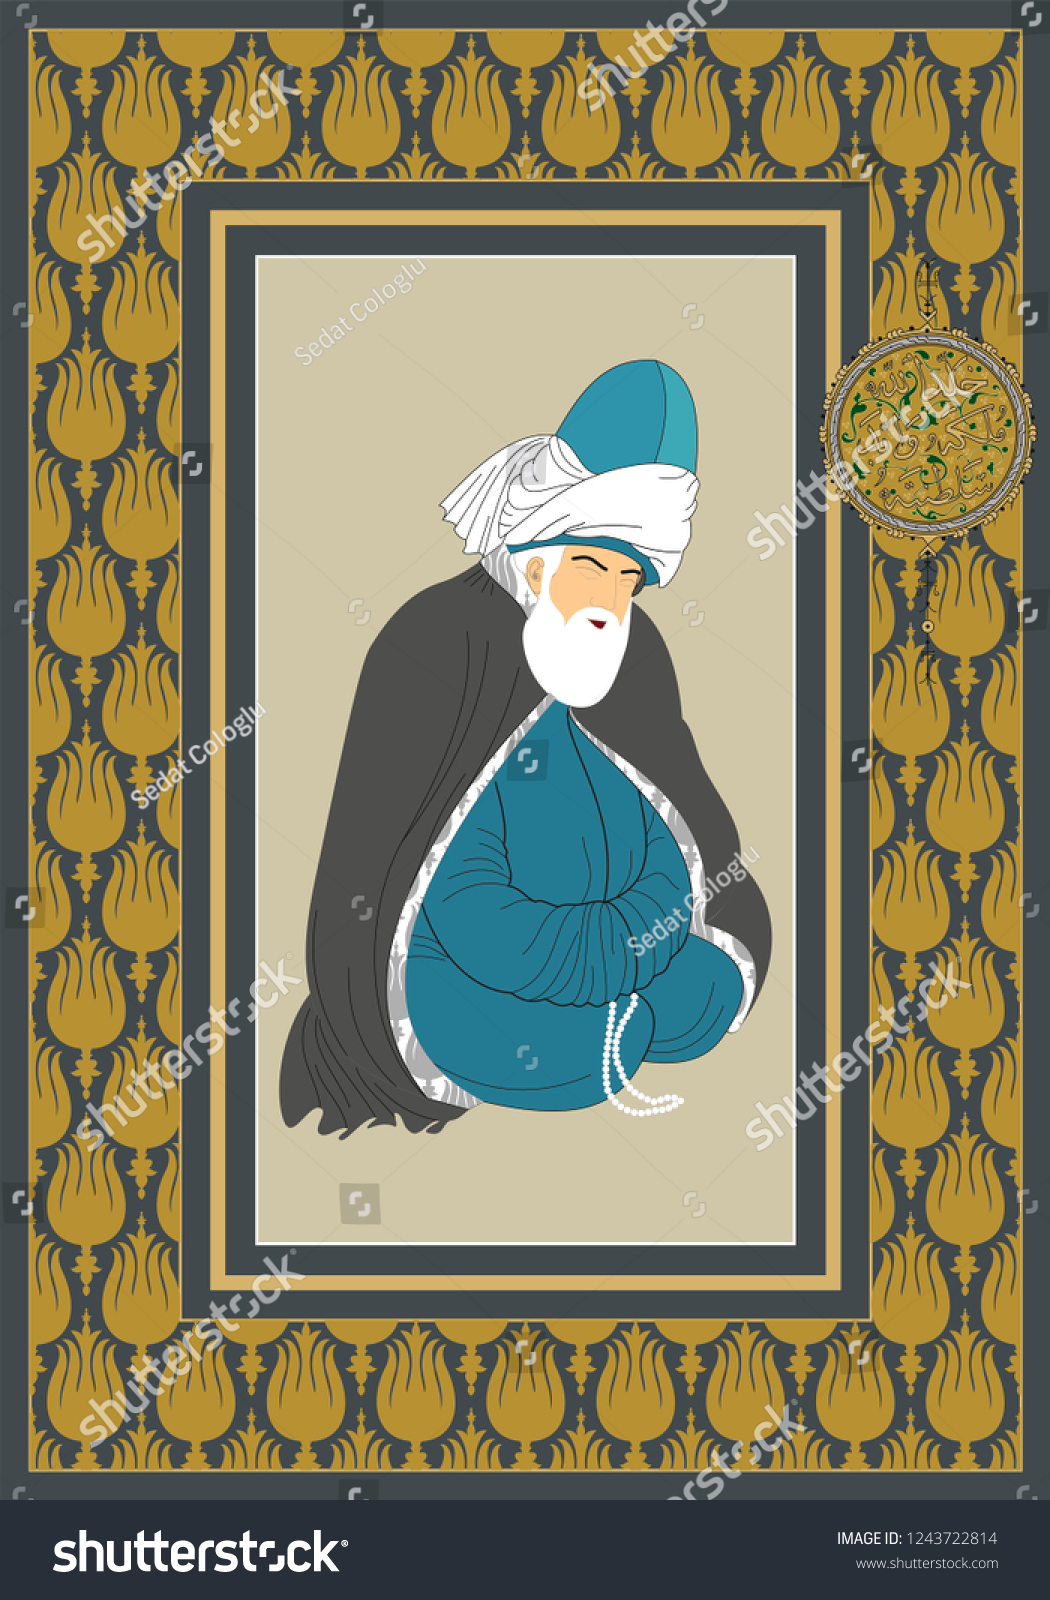 stock-vector-vector-hand-drawn-mevlana-poster-it-can-be-used-as-wall-decoration-table-gift-card-book-1243722814